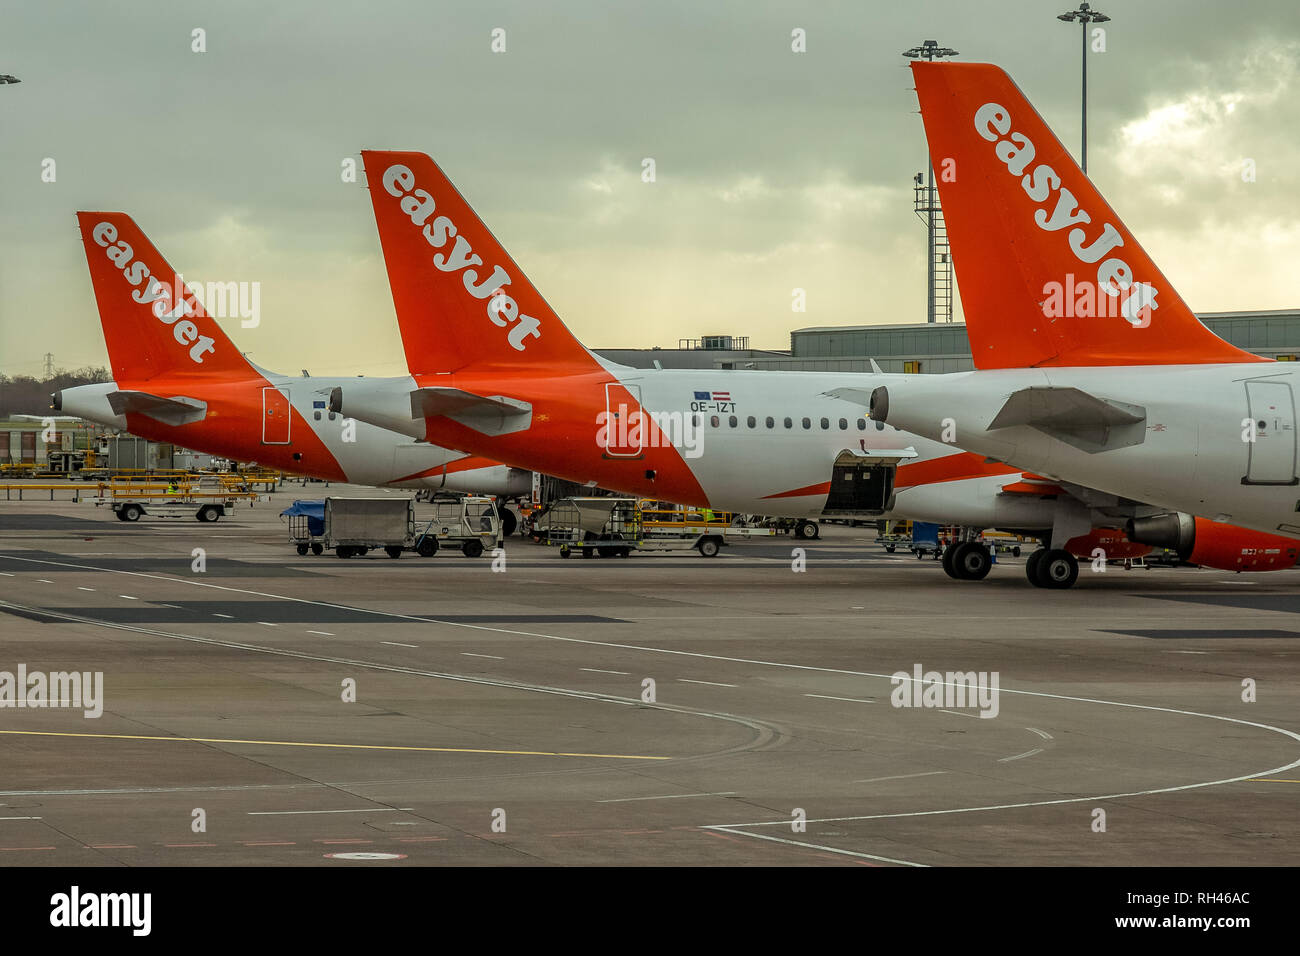 Three Easyjet Airbus aeroplanes at Manchester Airport in England. - Stock Image